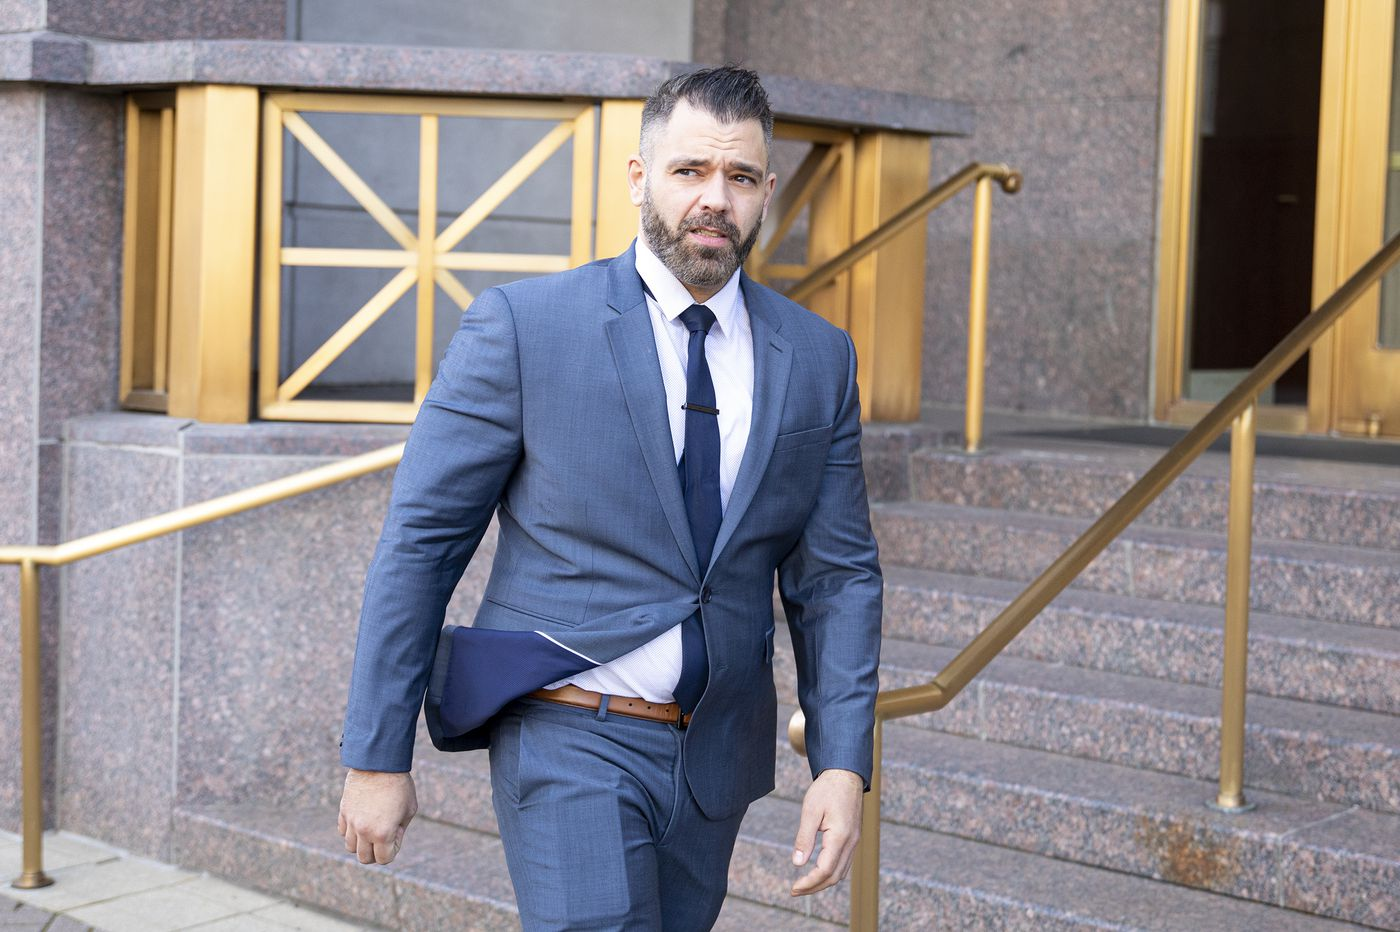 Mark D'Amico 'will fight' federal charges in GoFundMe scam that raised money for homeless vet Johnny Bobbitt